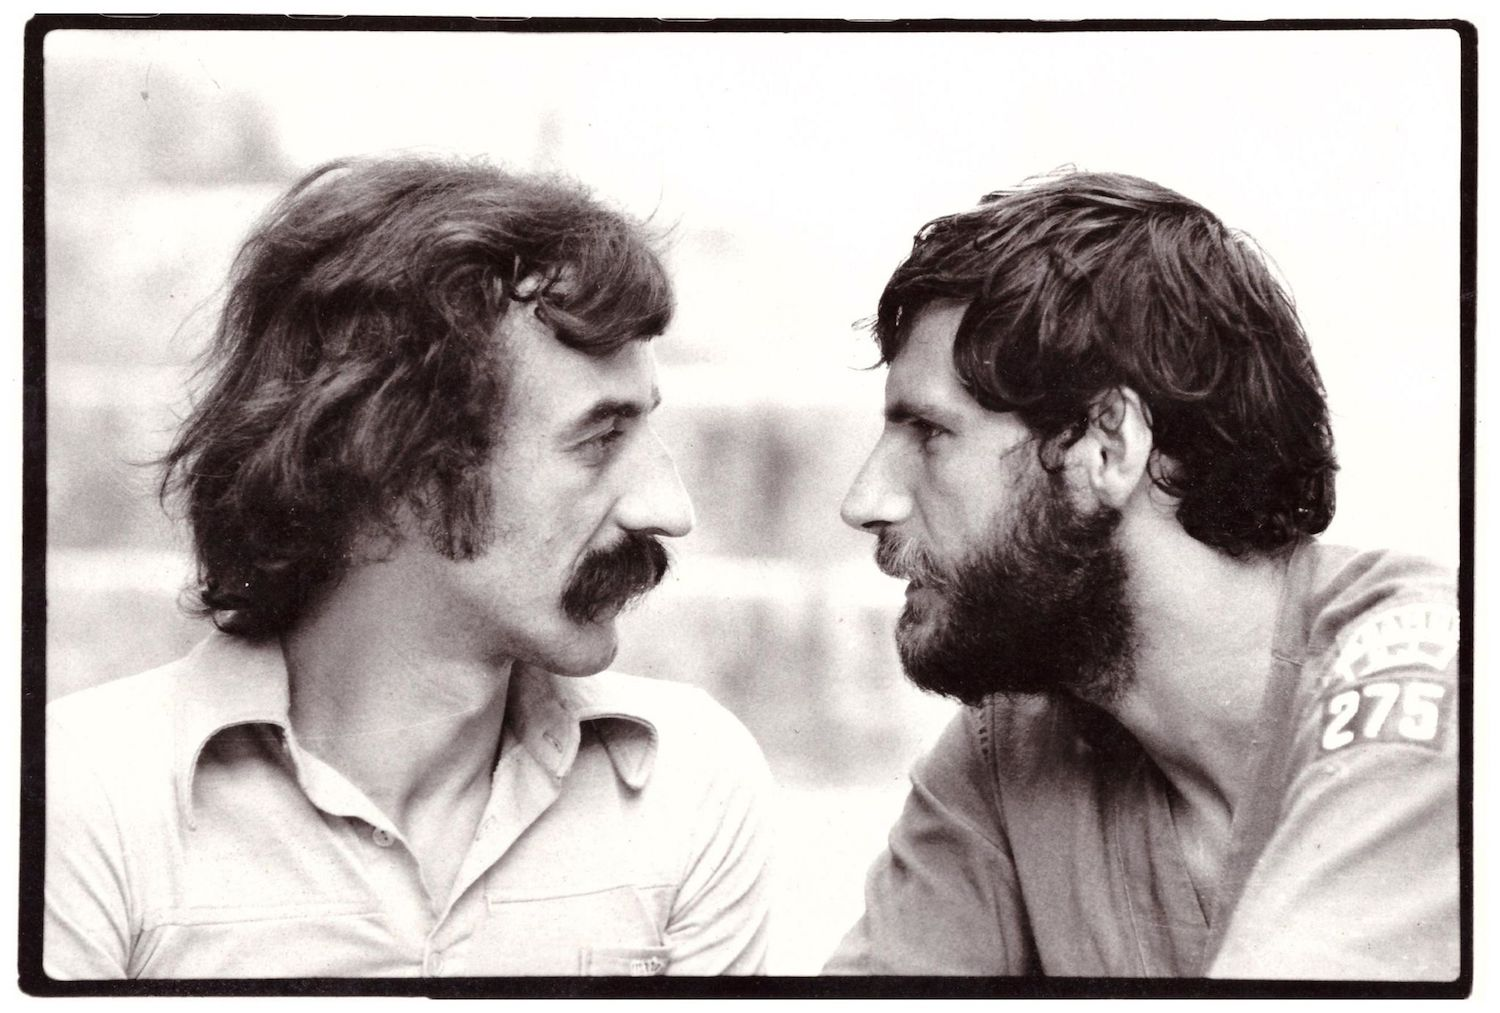 Ristić and KPGT co-founder Rade Šerbedžija in the late 1970s